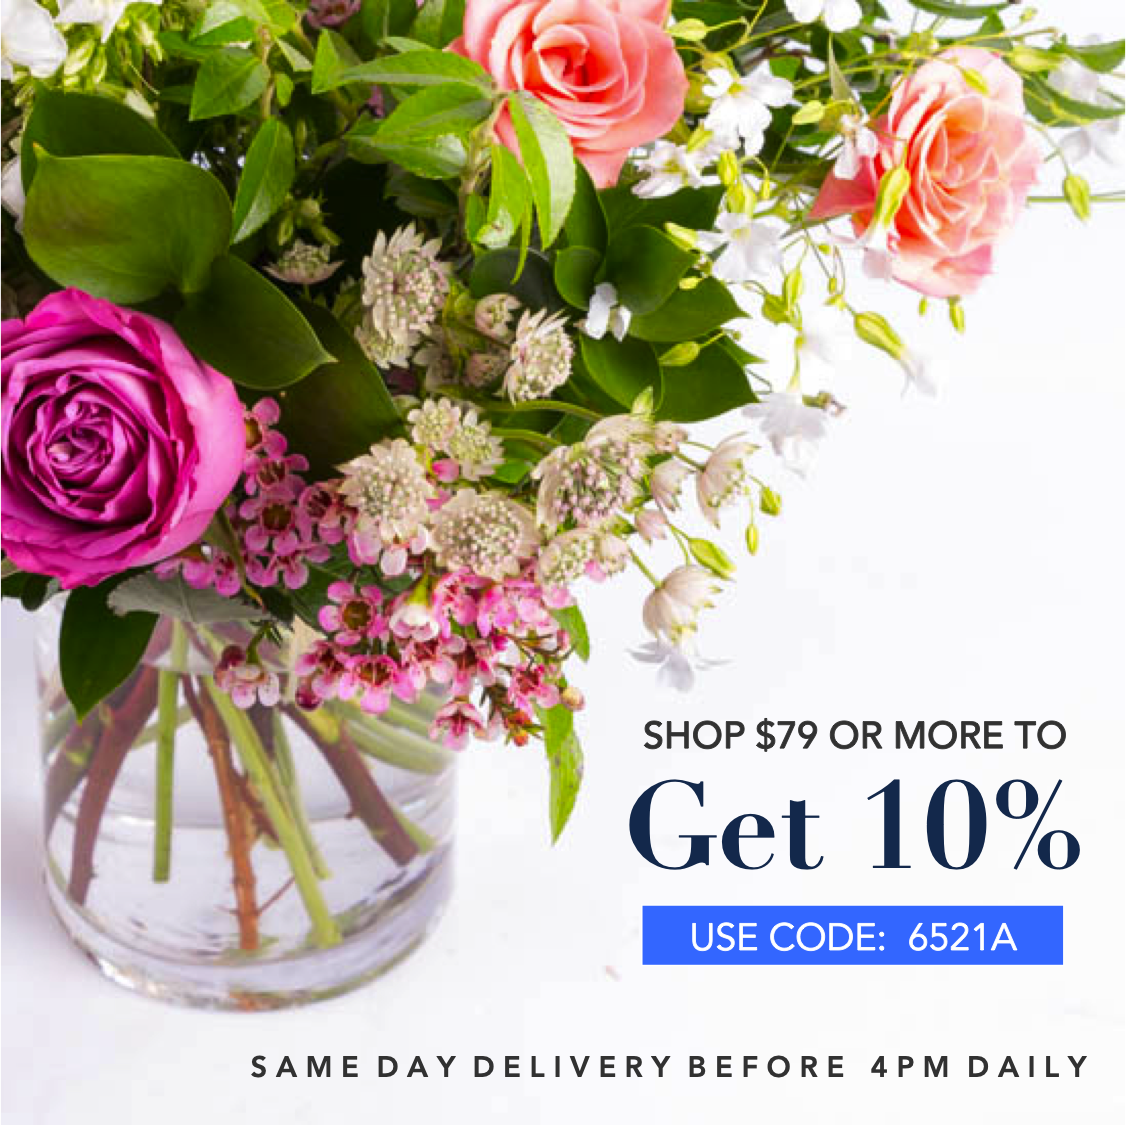 angies-floral-designs-same-day-discount-delivery-r-el-paso-designers-florist-hydrangea-79912-angies-flower-flores-el-paso-flower-shop-florist-weddings-1.png